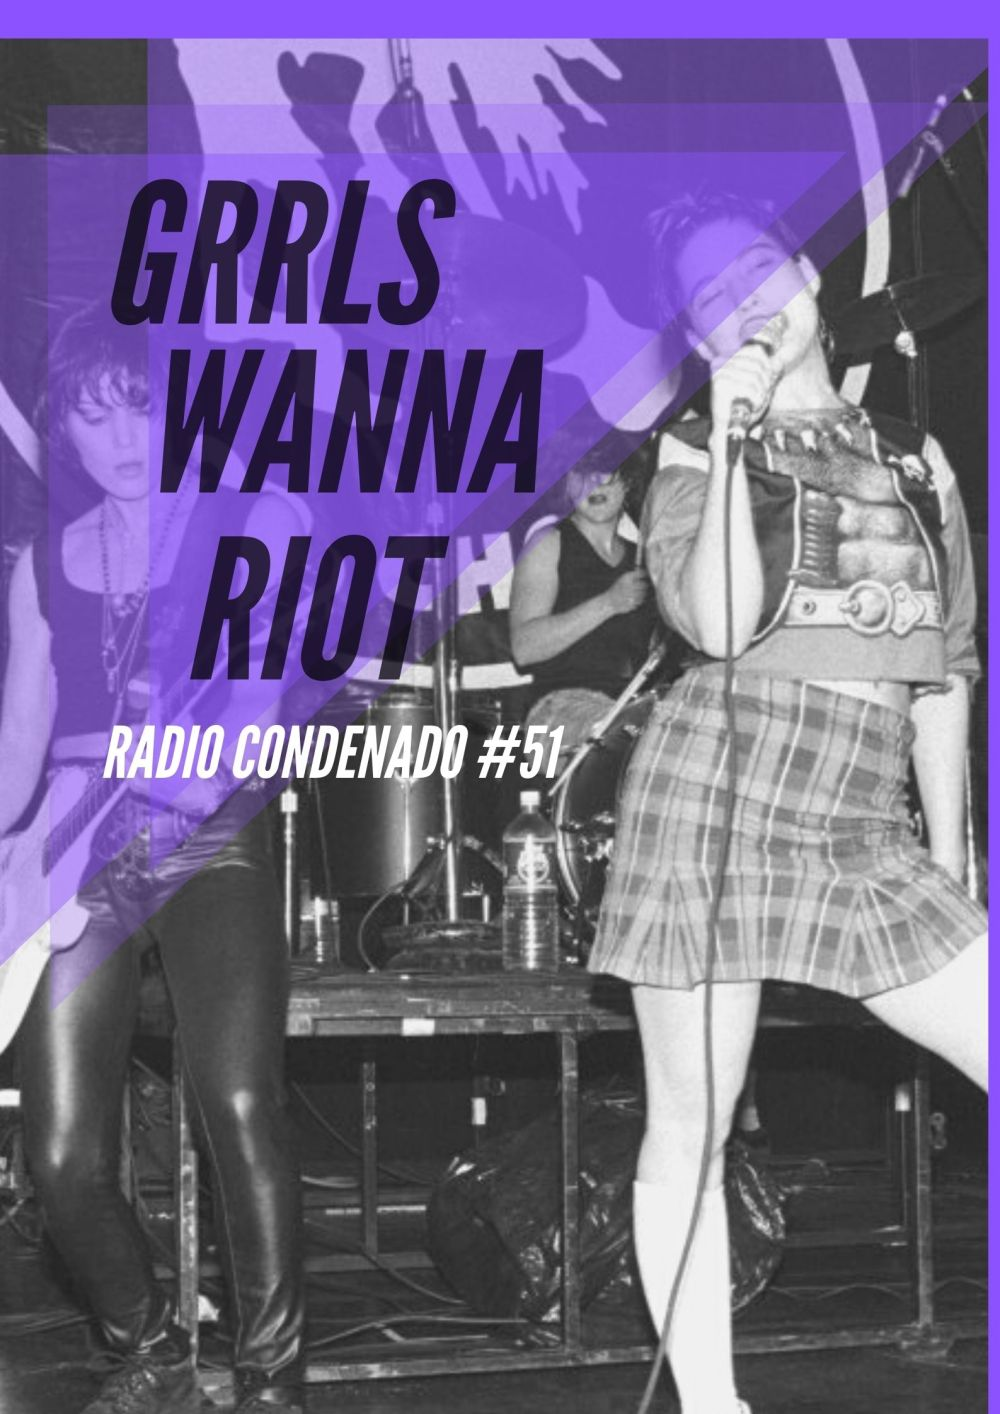 Cartel de Radio Condenado #51 | Grrrls Wanna Riot